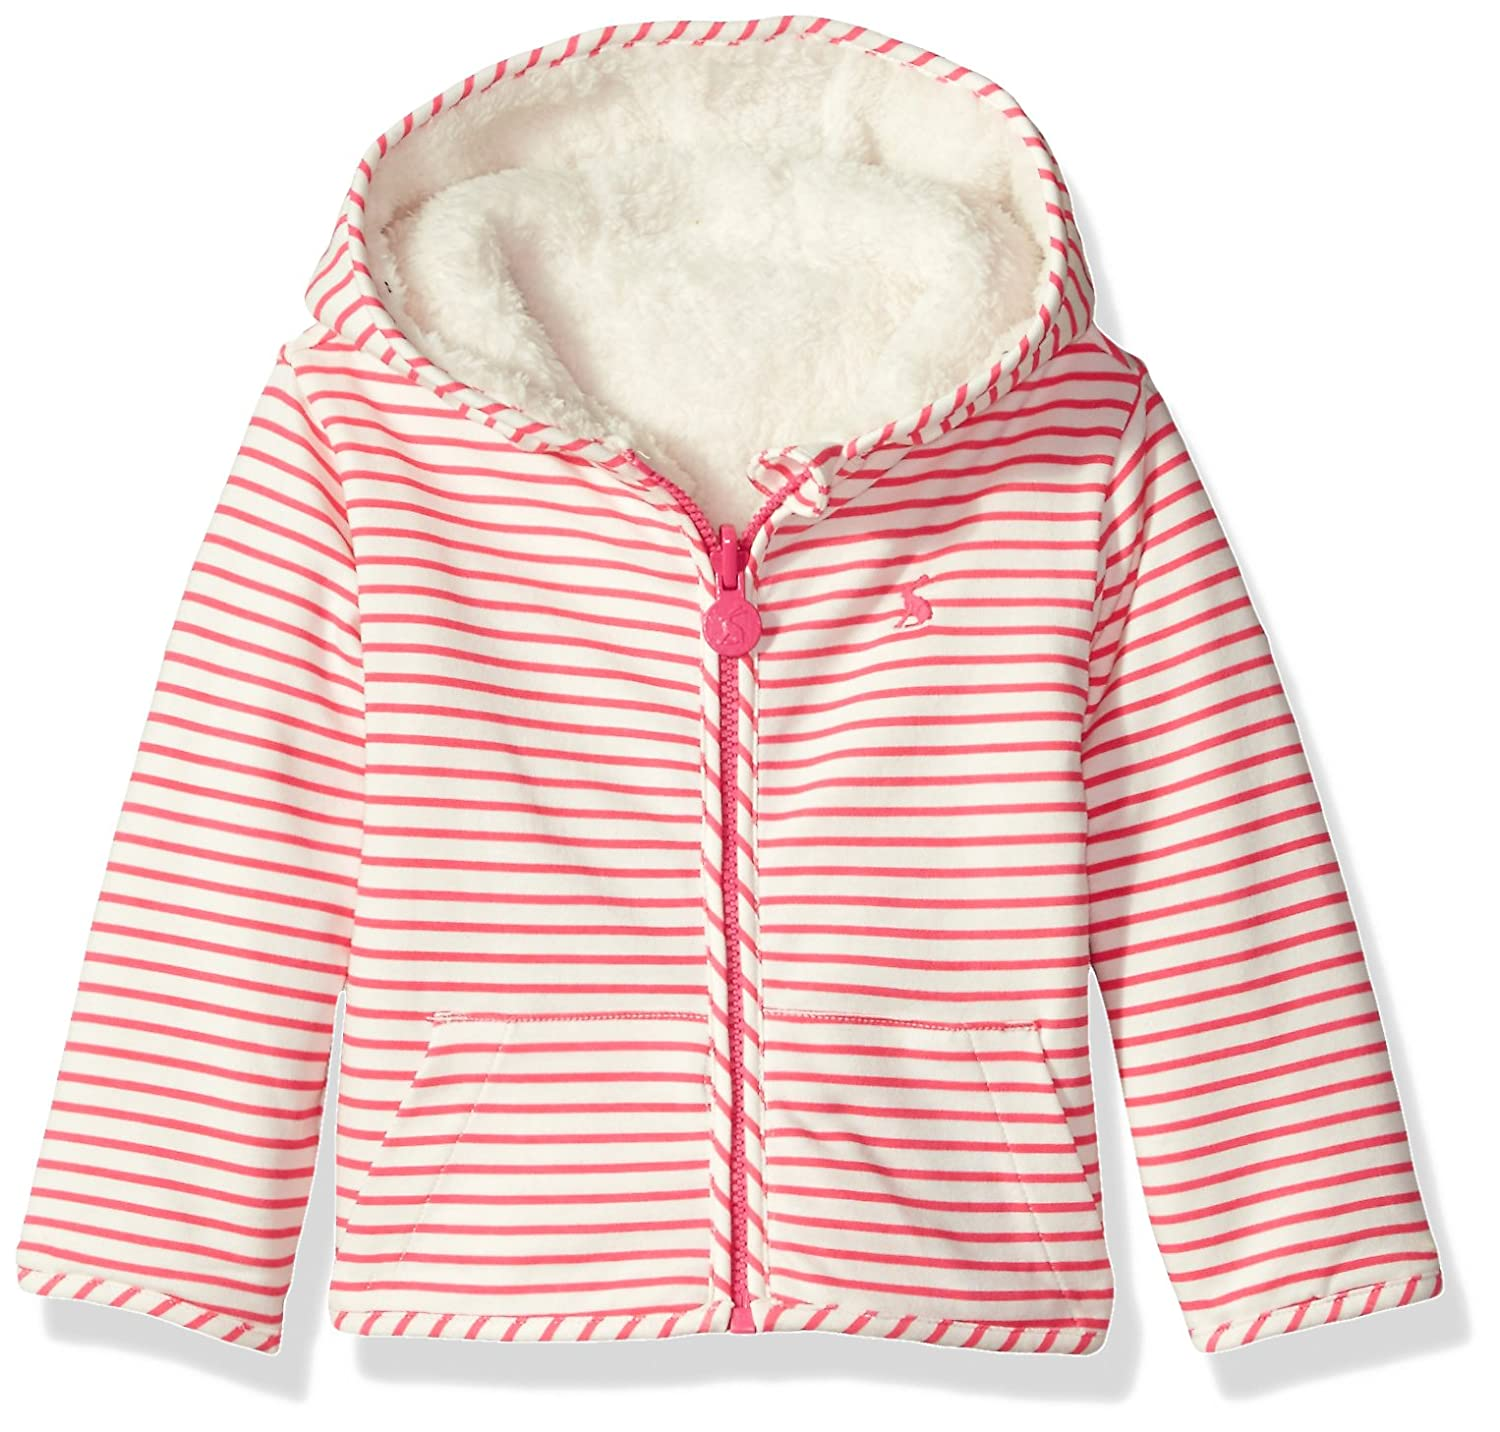 Joules Baby Reversible Zip Fleece - True Pink Stripe